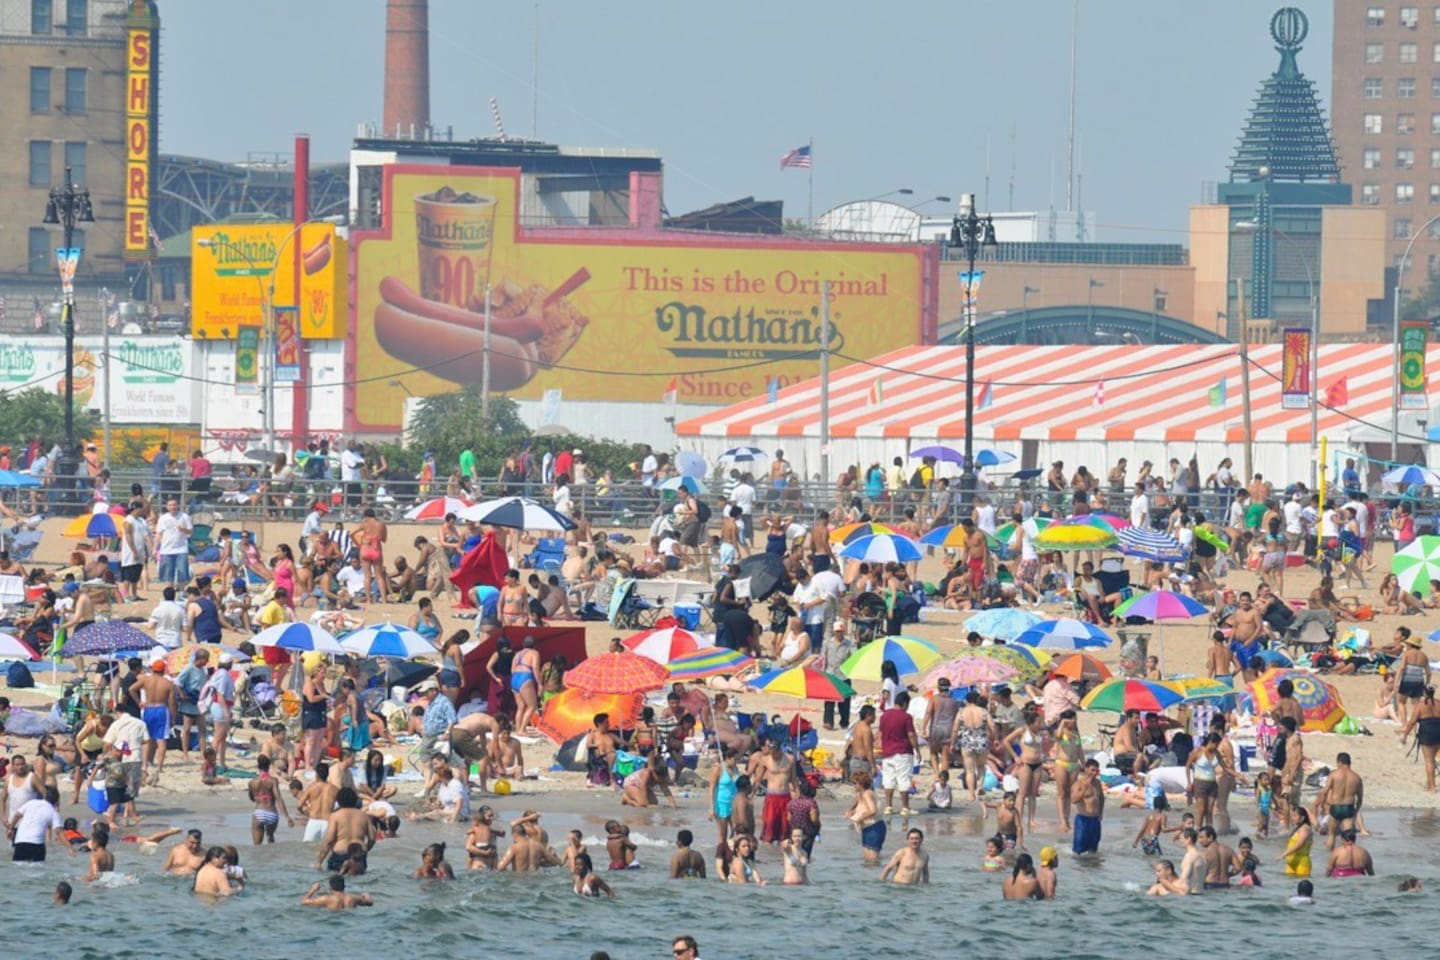 Our one and only World Famous Coney Island Beach.